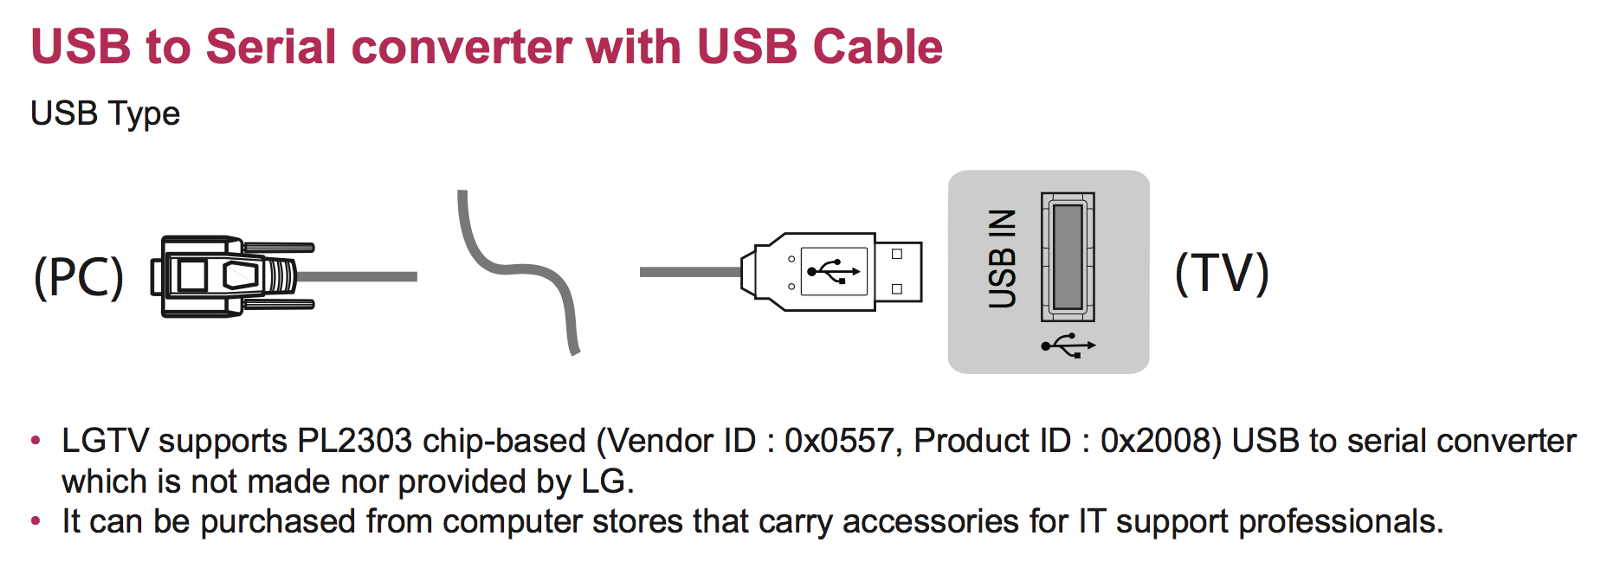 Home Automation With Raspberry Pi Homebridge R X Seger Medium Wiringpi Ds18b20 The Lg 55ec9300 Owners Manual Does Not Seem To Mention Wol But Page 35 Documents External Control Devices First A Usb Serial Converter Pl2303